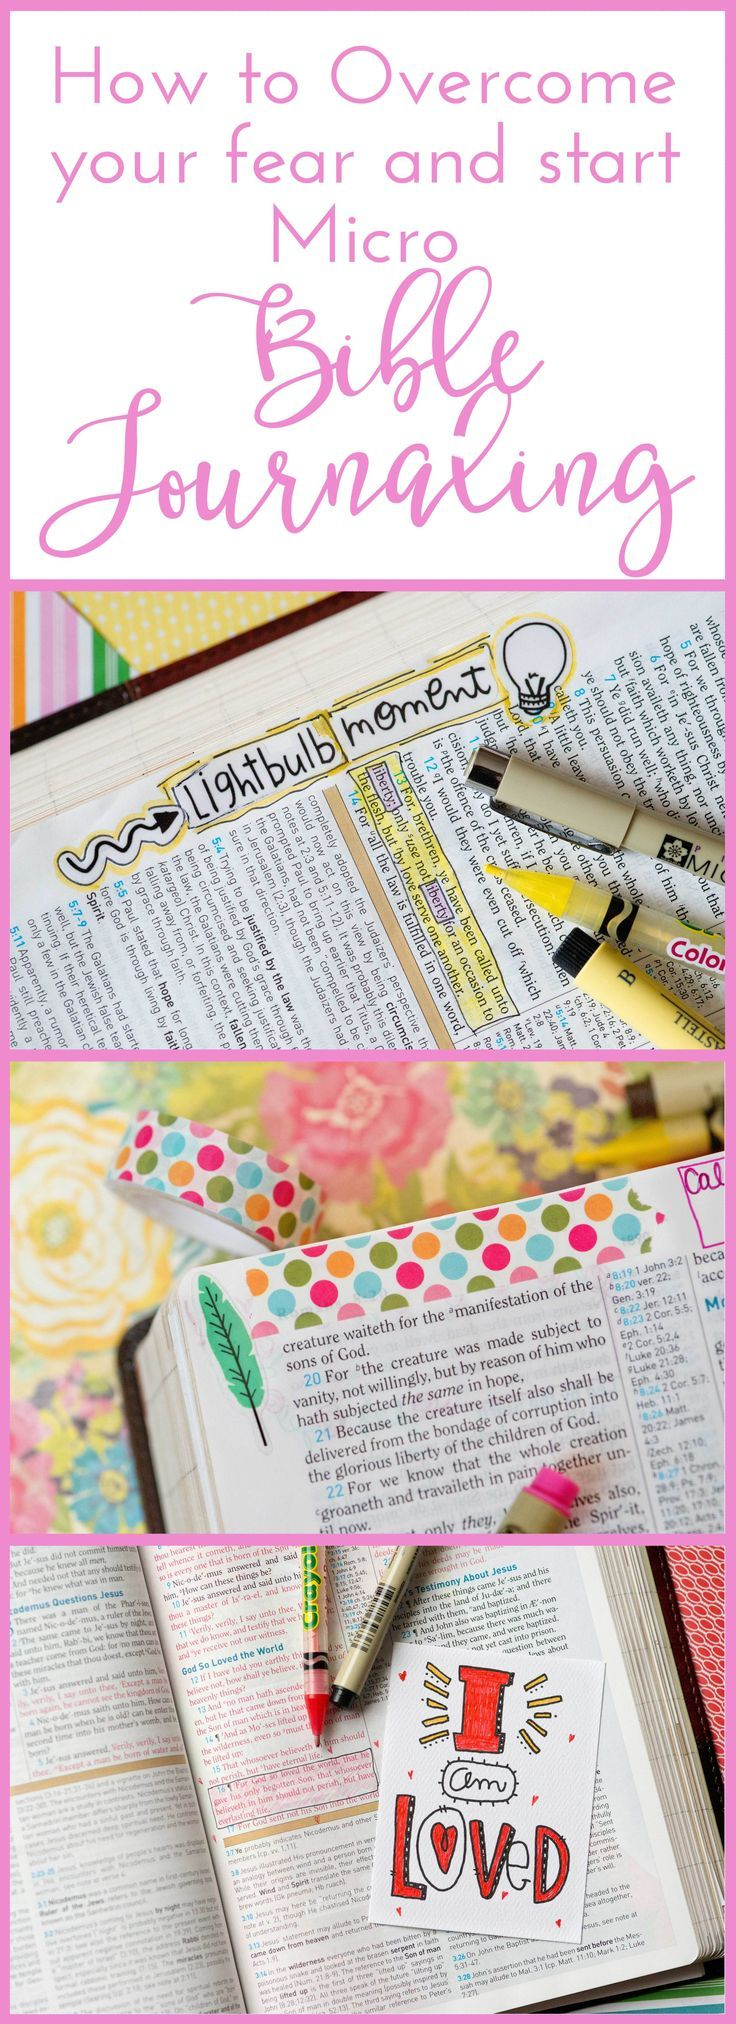 How to Overcome your Fear and Start Micro Bible Journaling!